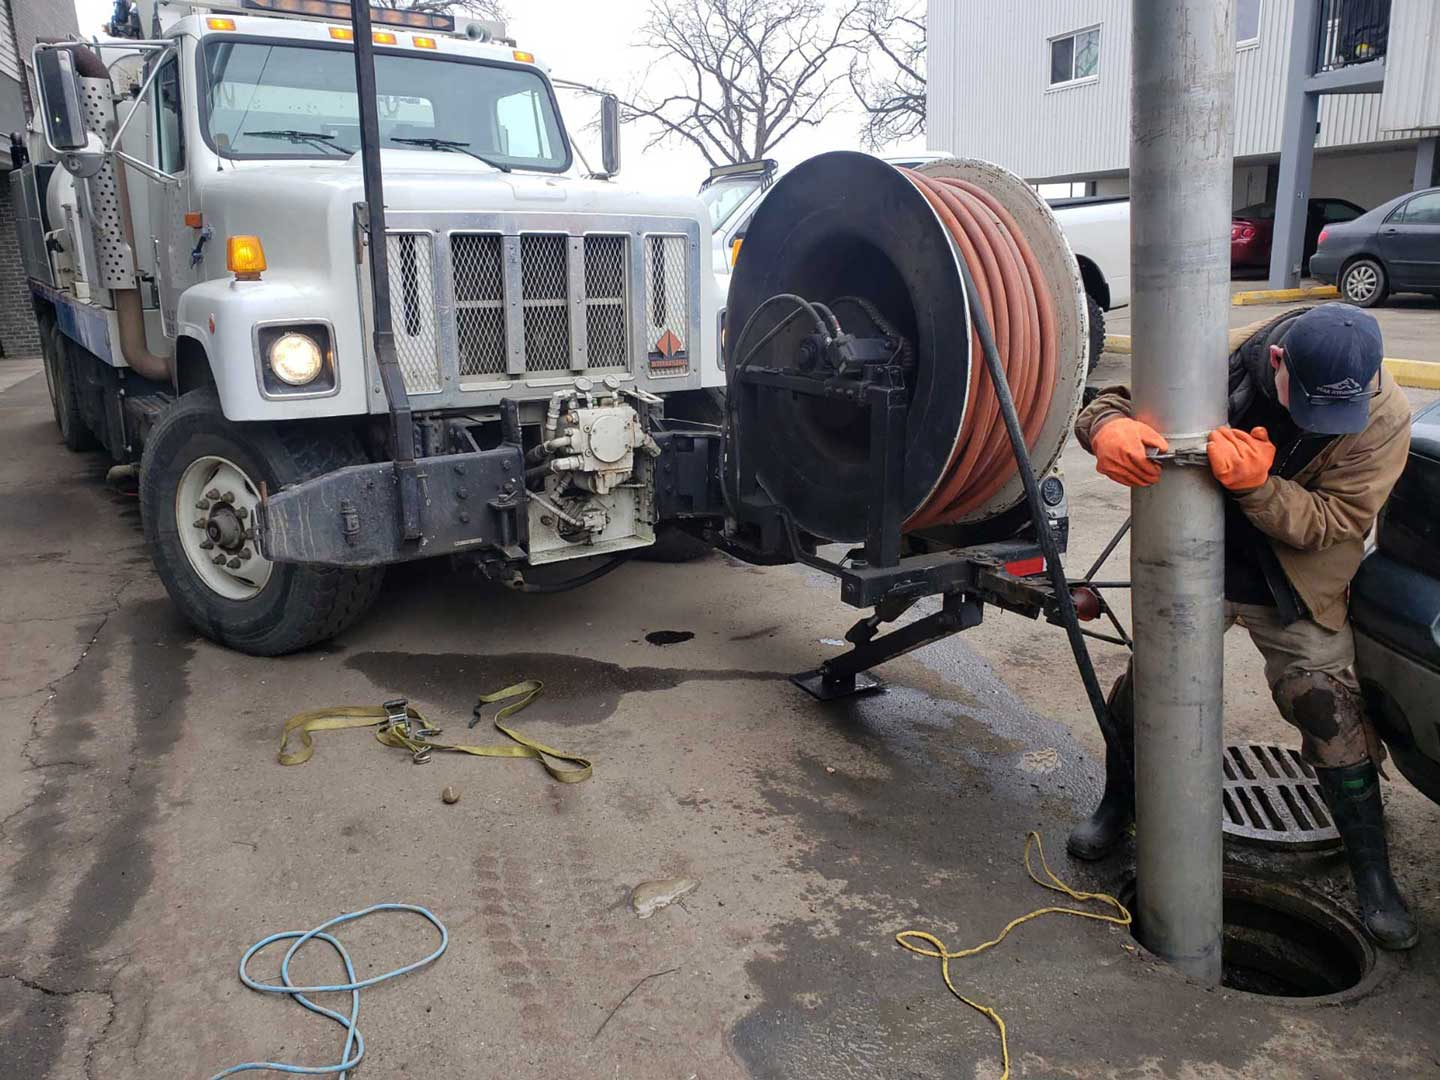 Hydrovac truck with worker cleaning manhole